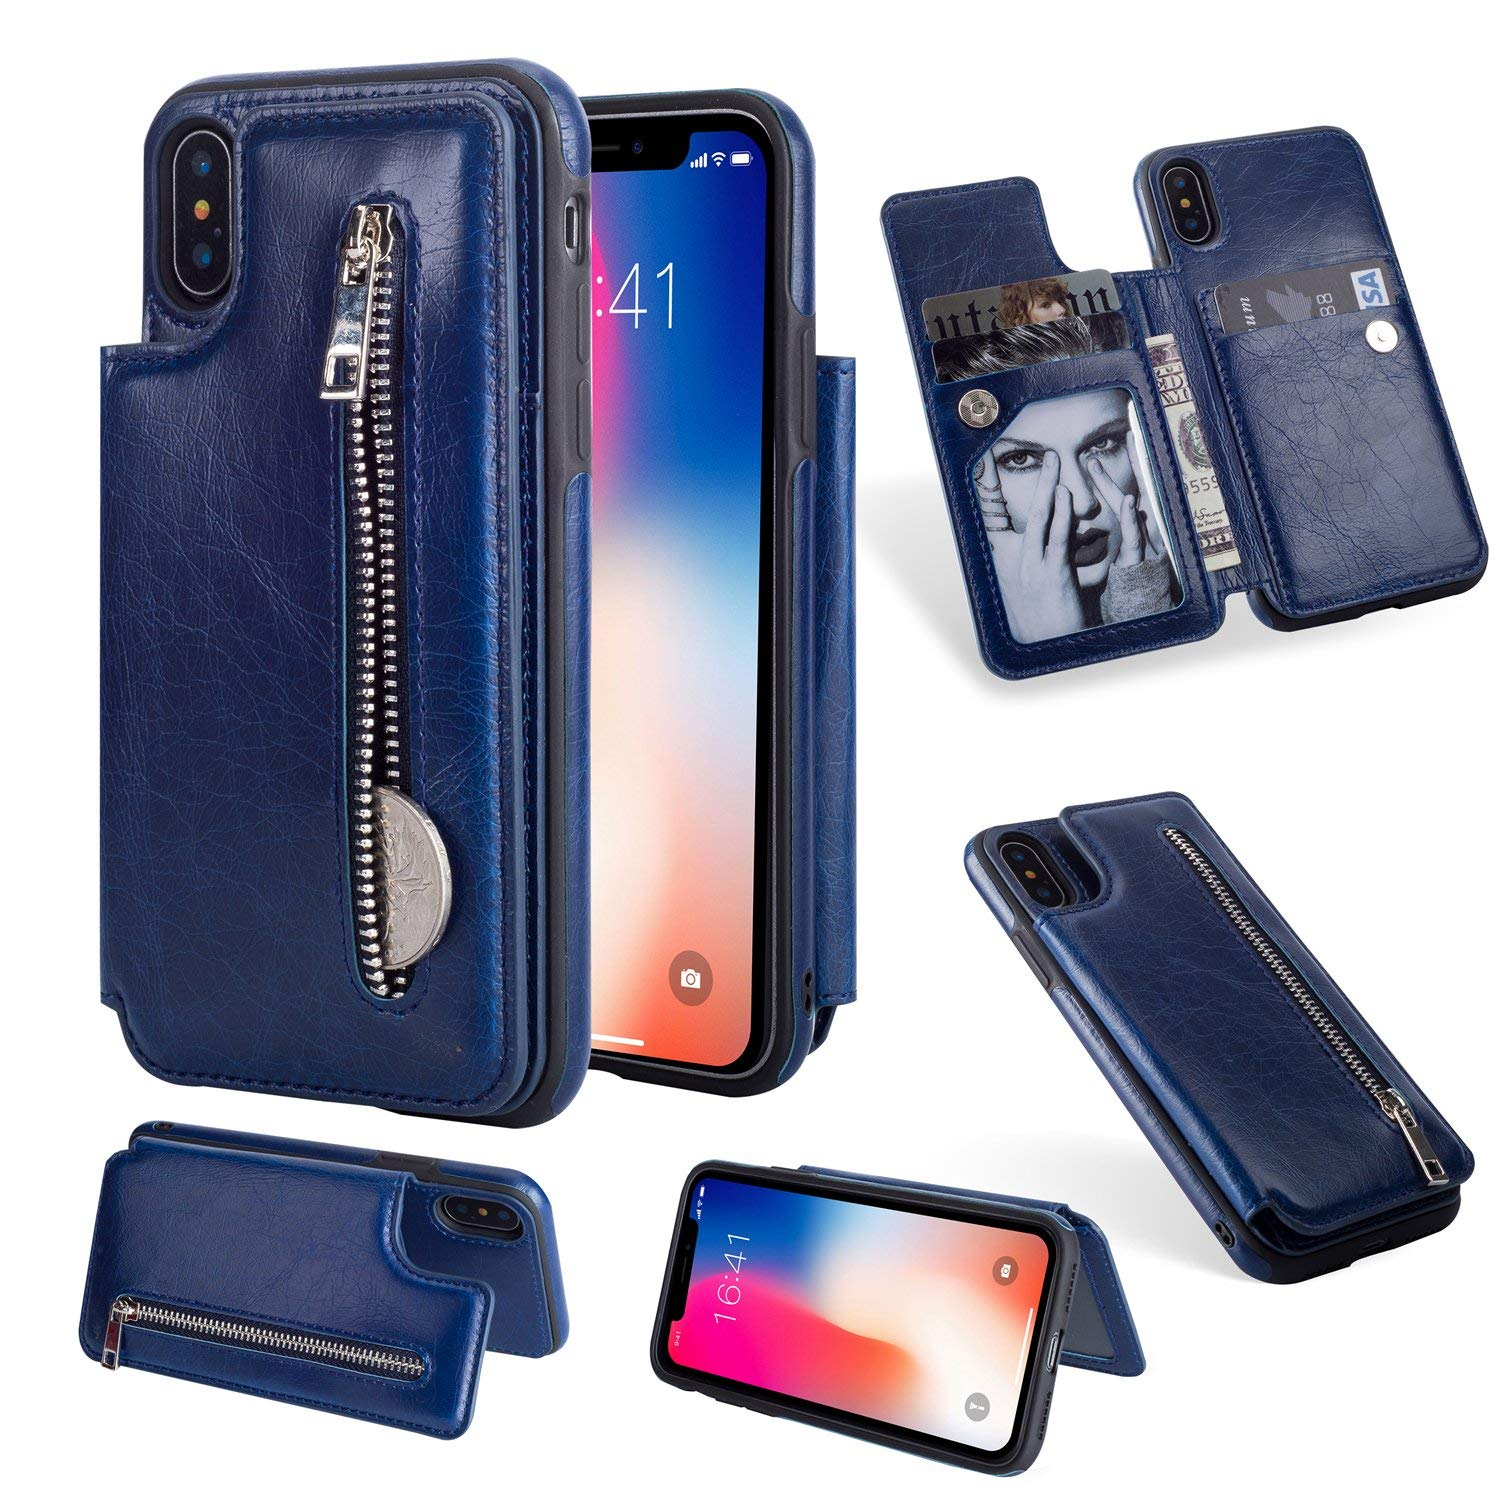 Jennyfly iPhone XR Cover, Fashion Zipper Magnetic Closure Wallet Design Premium Durable Leather Zipper Protective Cover with Card Slots & Money Pocket for iPhone XR 6.1 Inch - Blue by Jennyfly